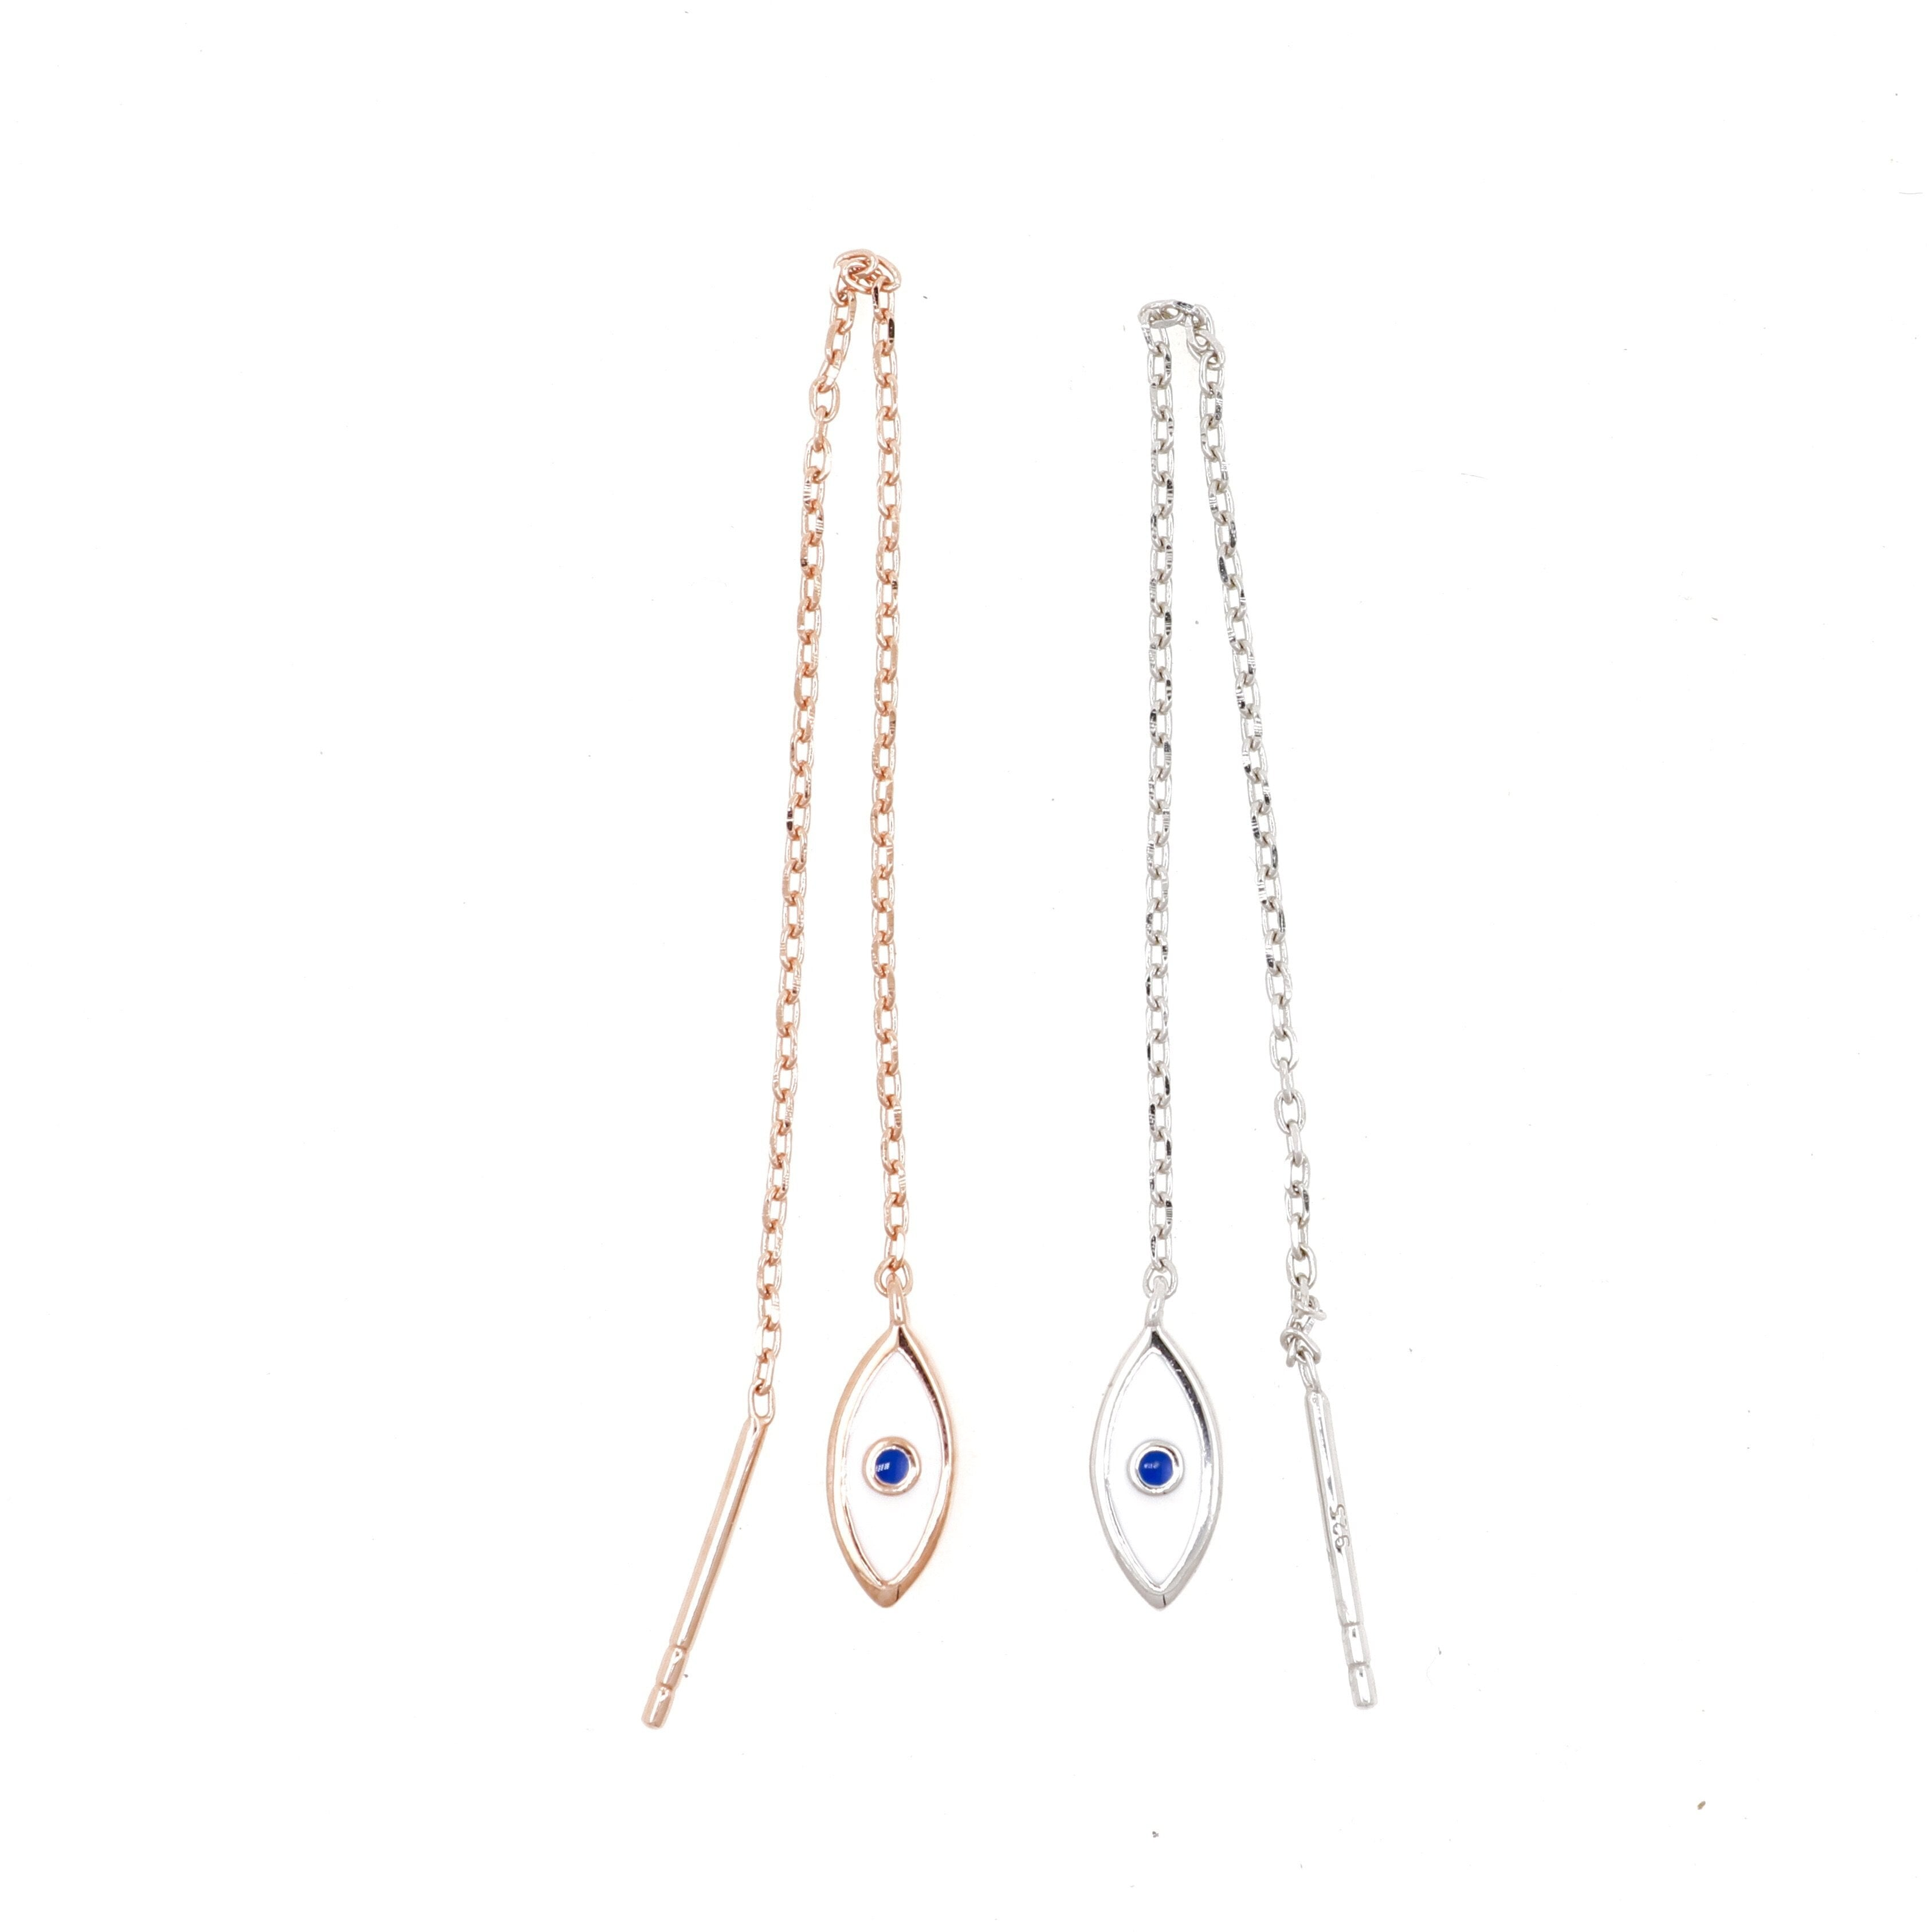 Rose gold Chain earrings - Eye see no evil